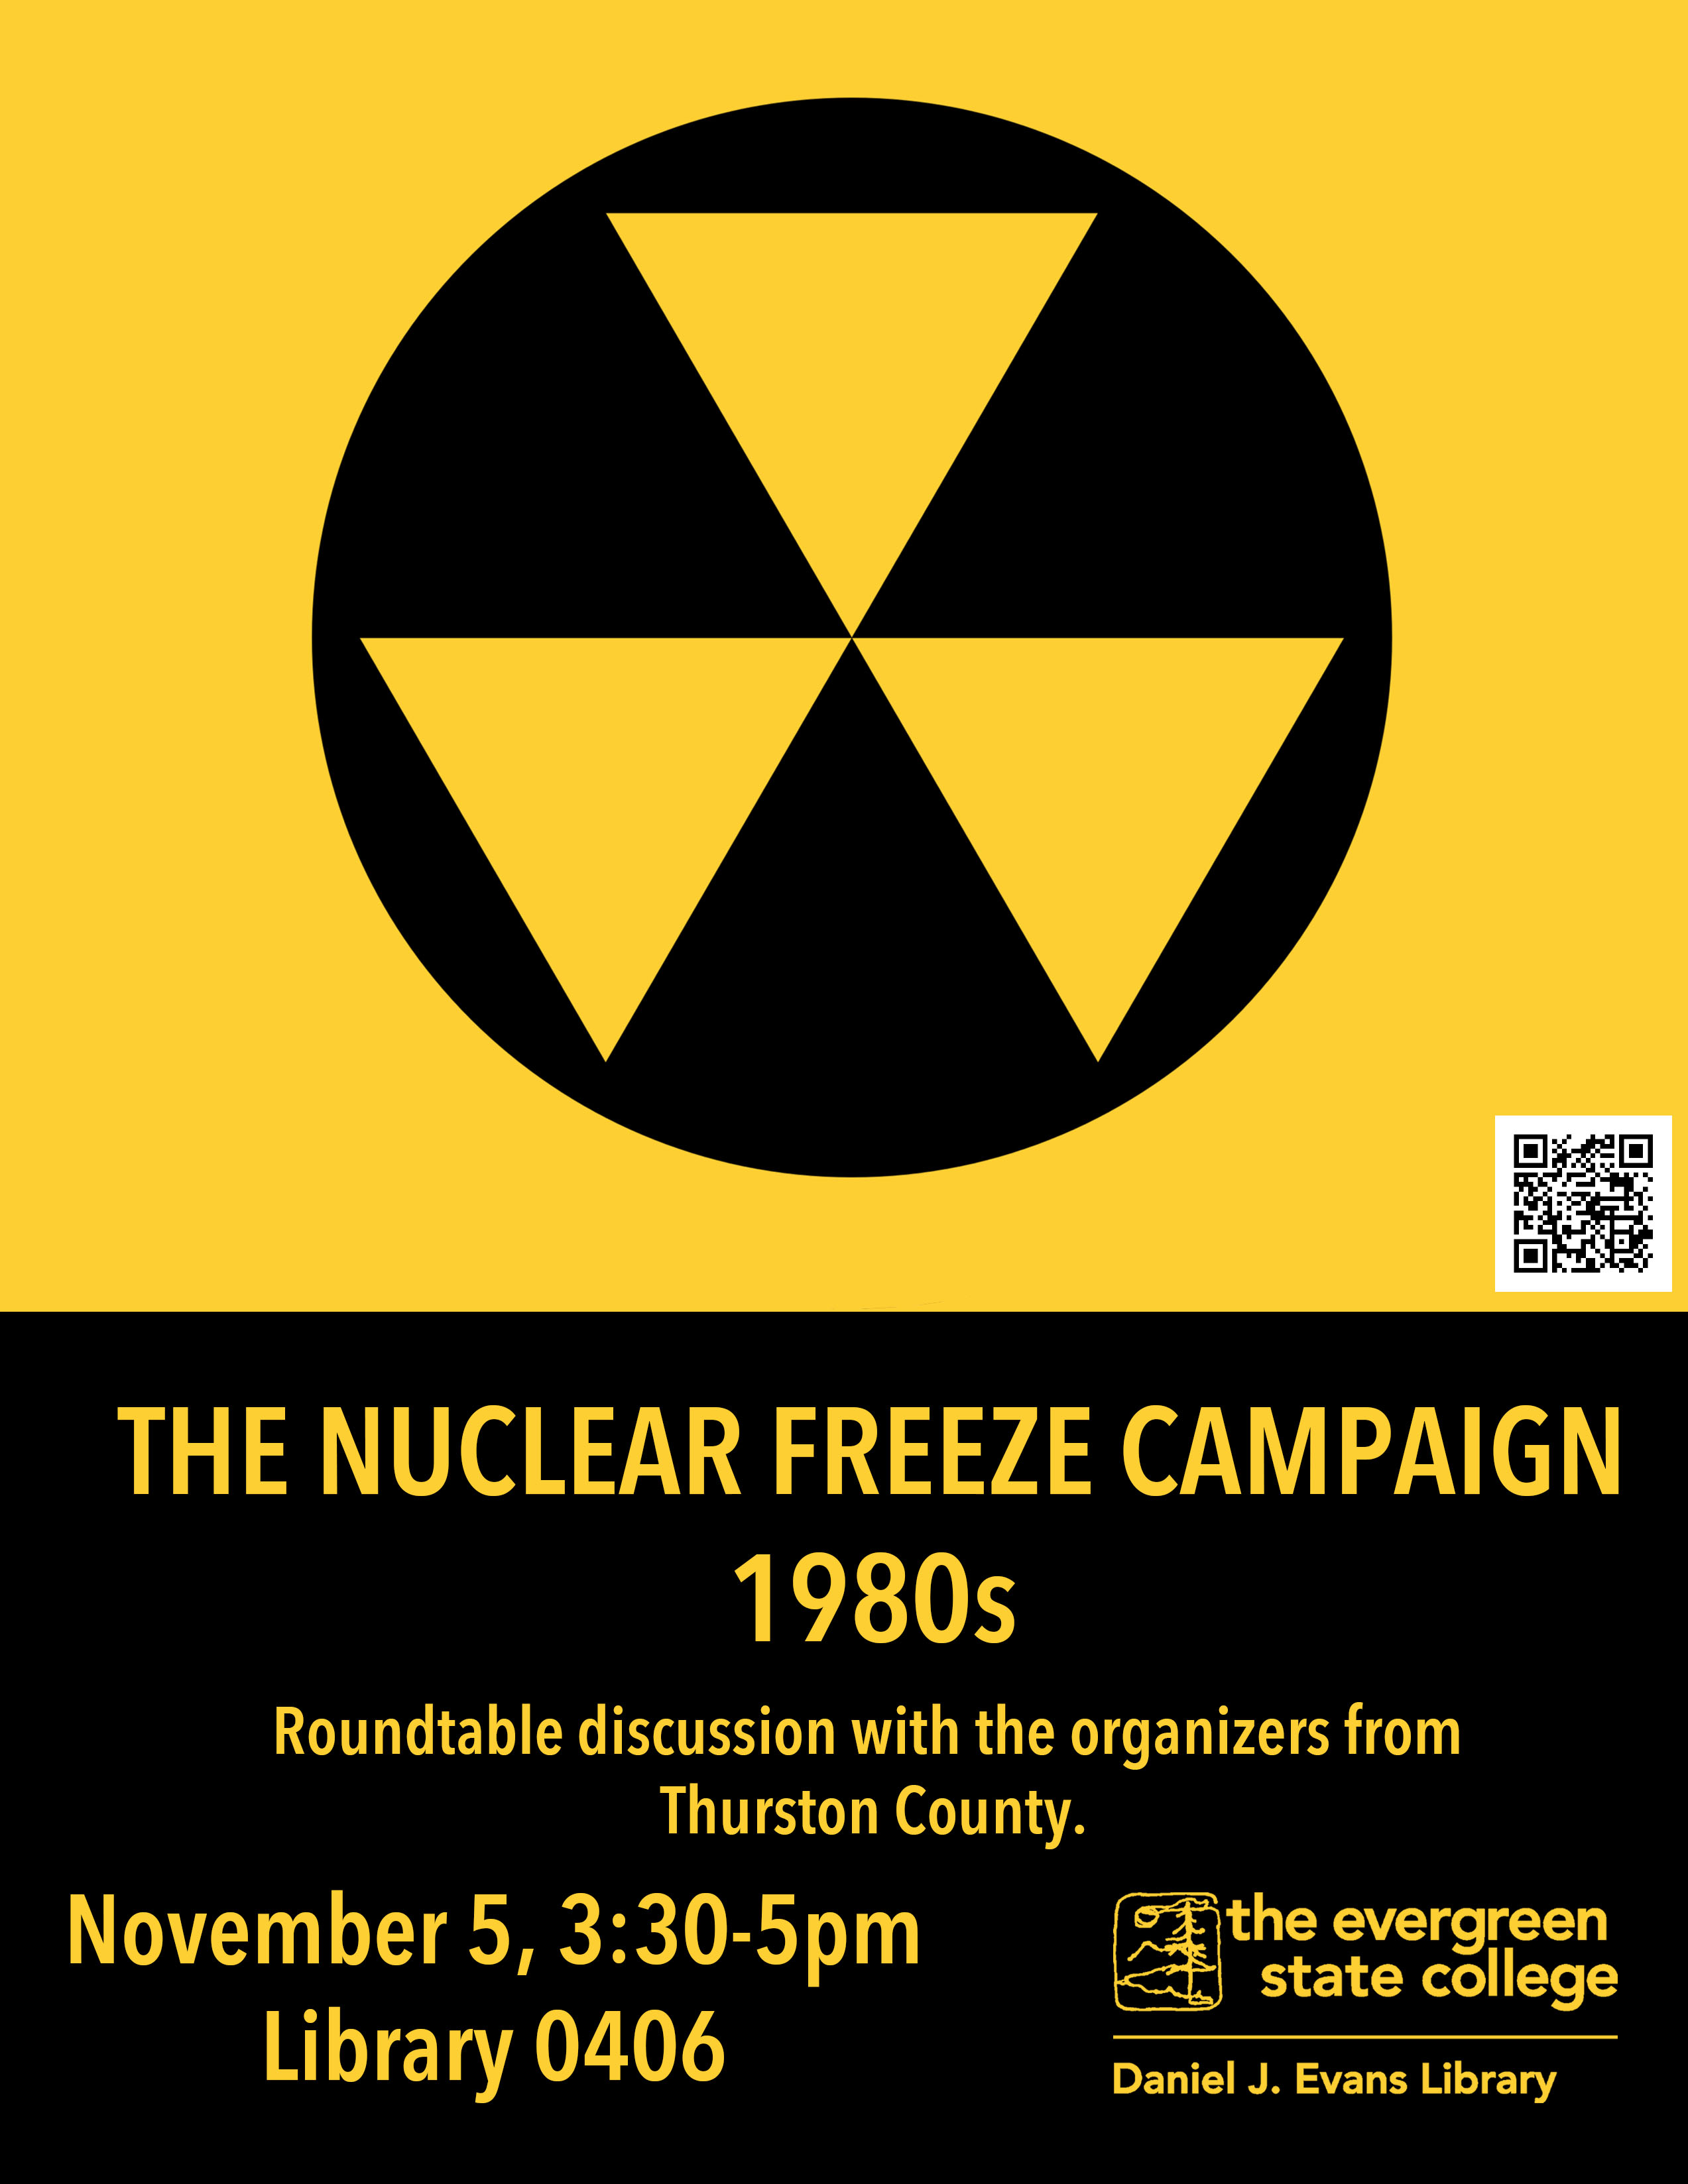 nuclear freeze roundtable discussion event